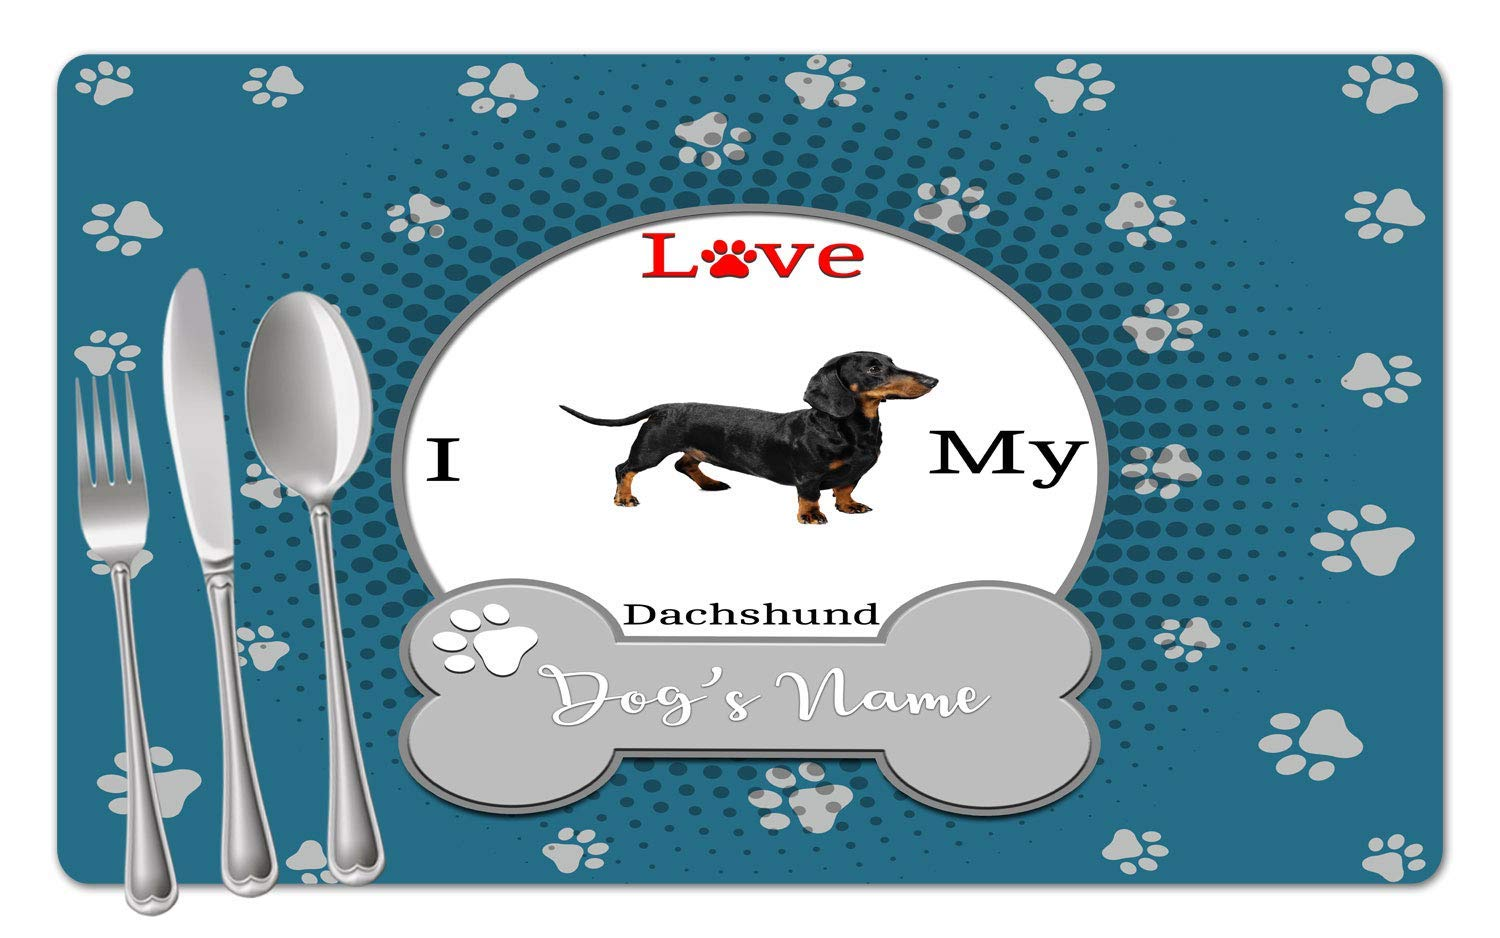 BRGiftShop Personalized Custom Name I Love My Dog Dachshund Set of 4 Table Placemats